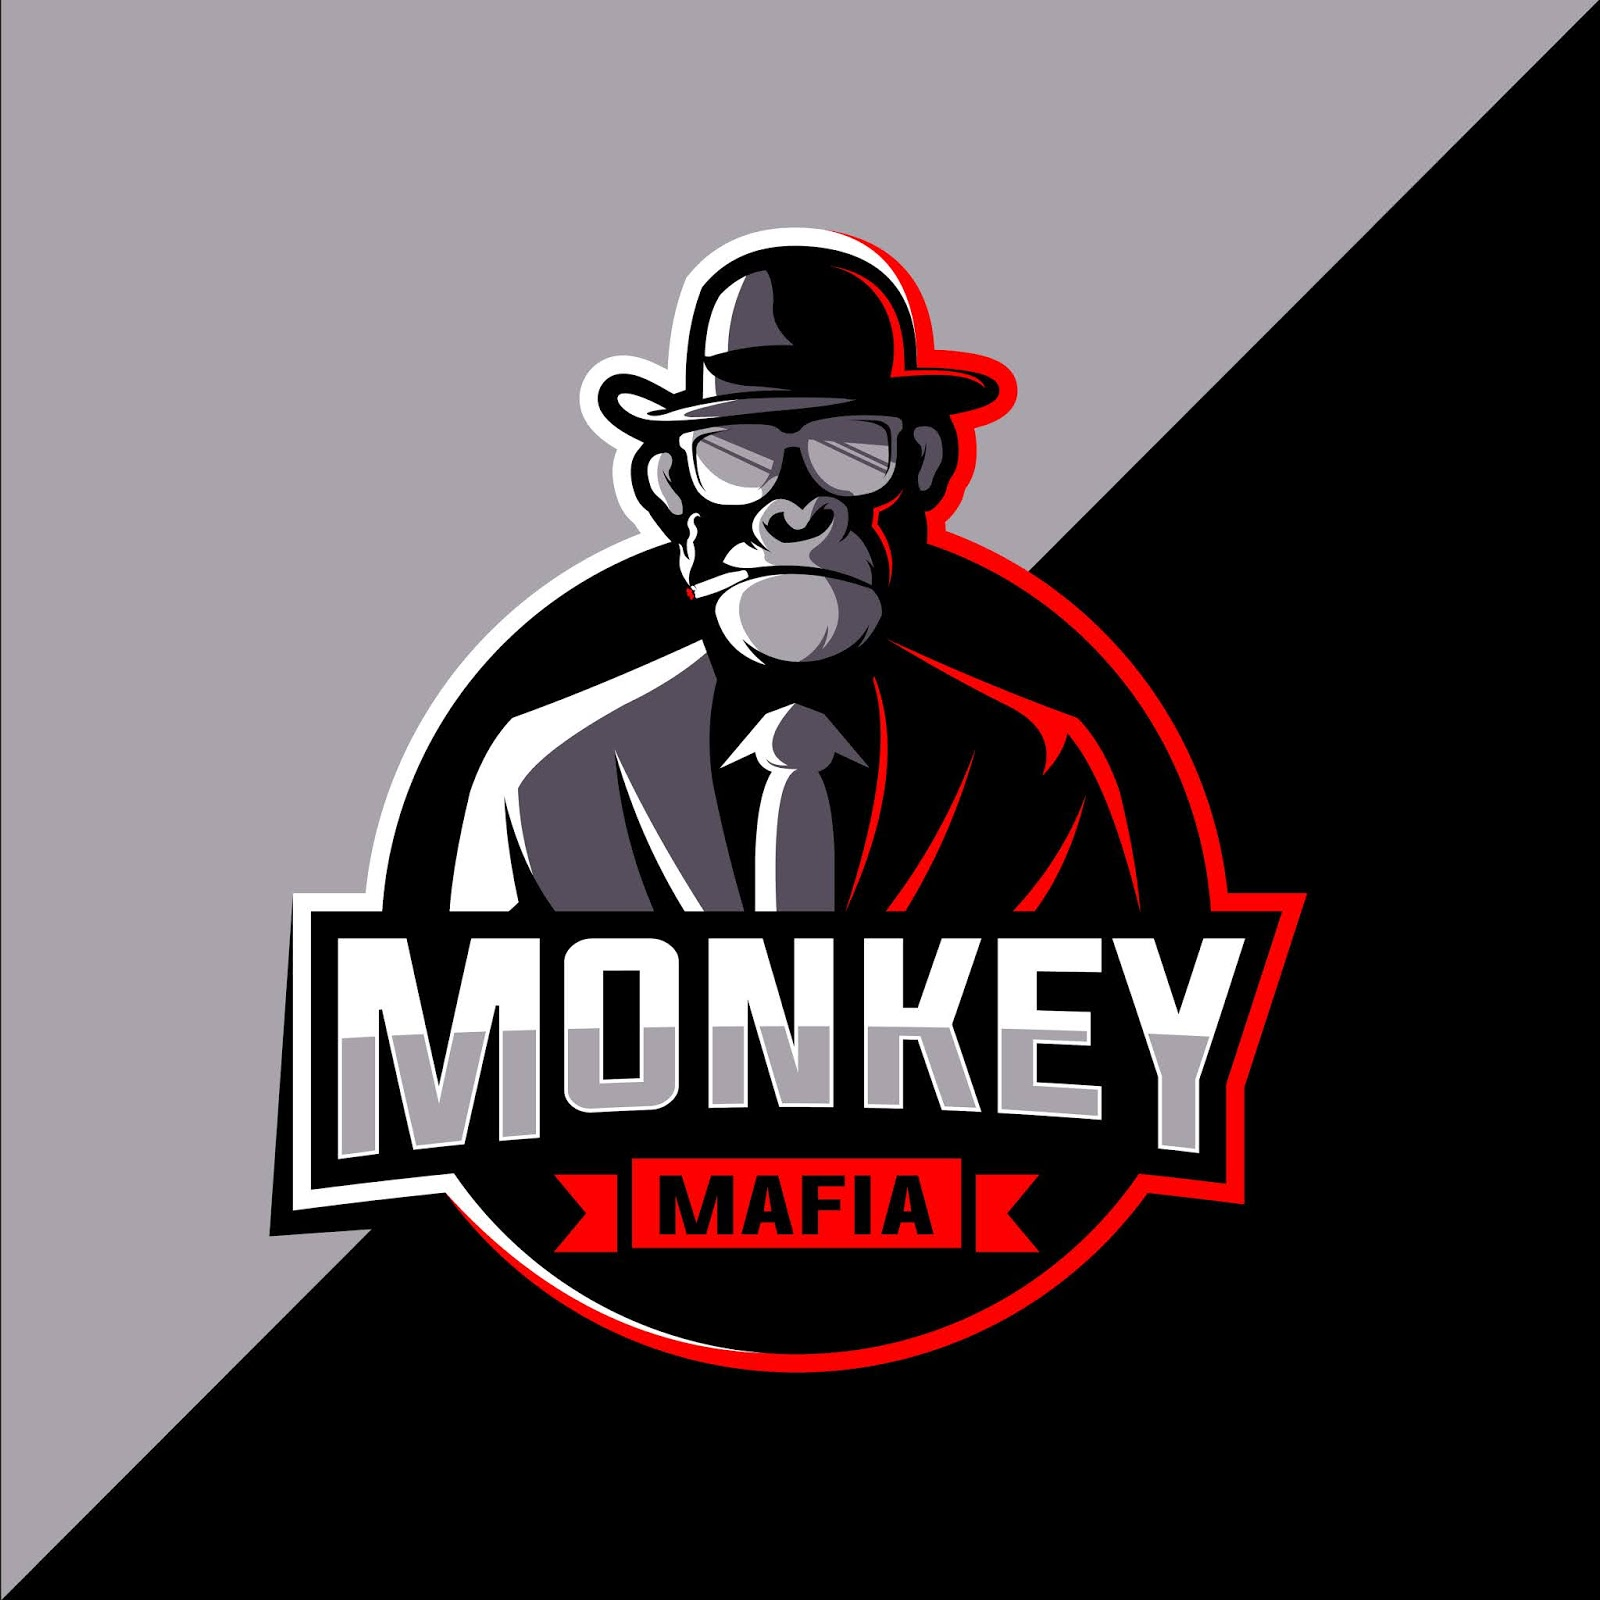 Mafia Monkey Esports Logo Design Free Download Vector CDR, AI, EPS and PNG Formats